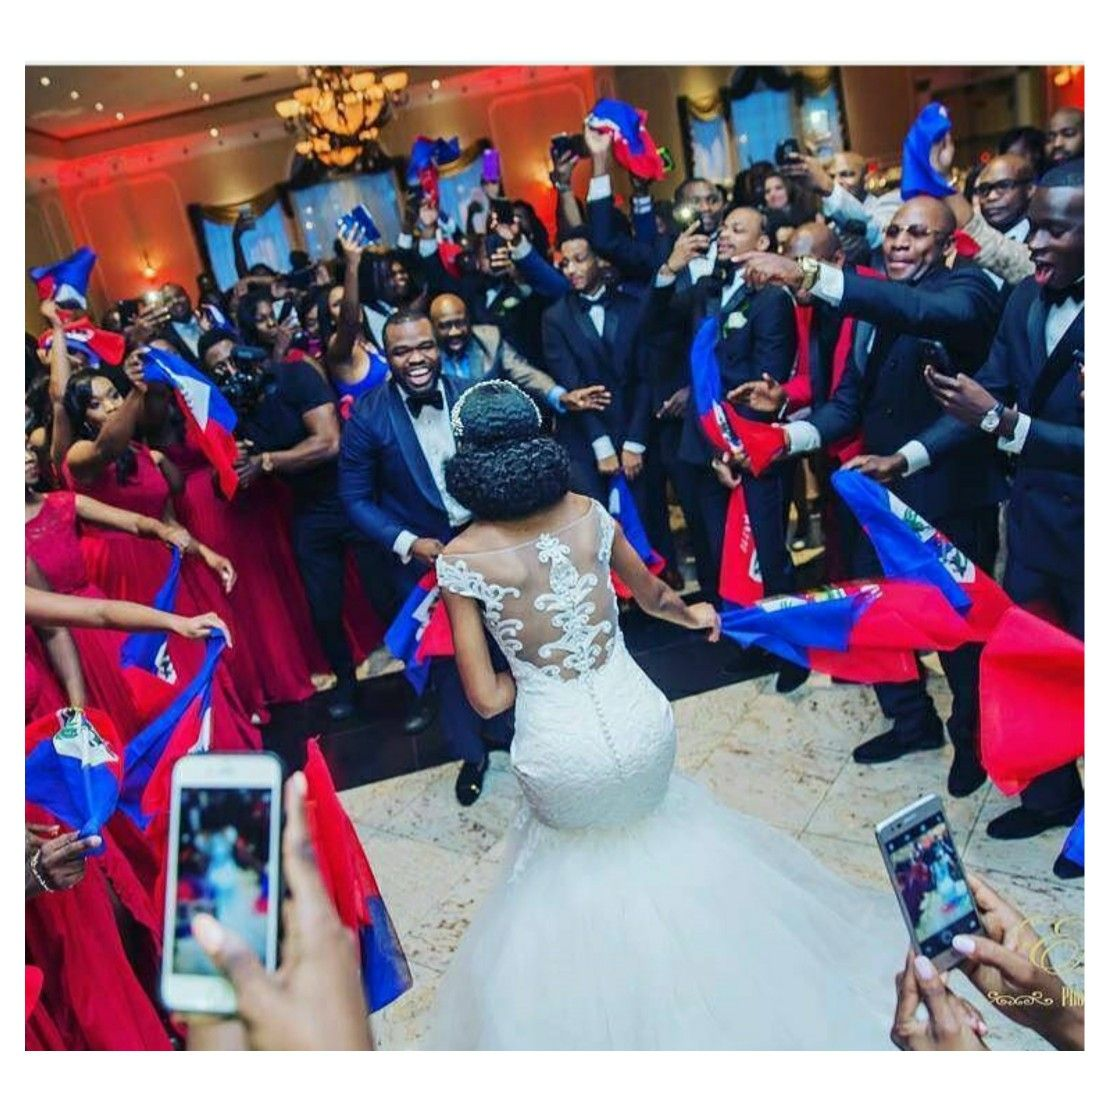 Story Instrumental Wedding Songs: Pin By Ariel Laura-Annie Metayer On Haitian Culture ♡ In